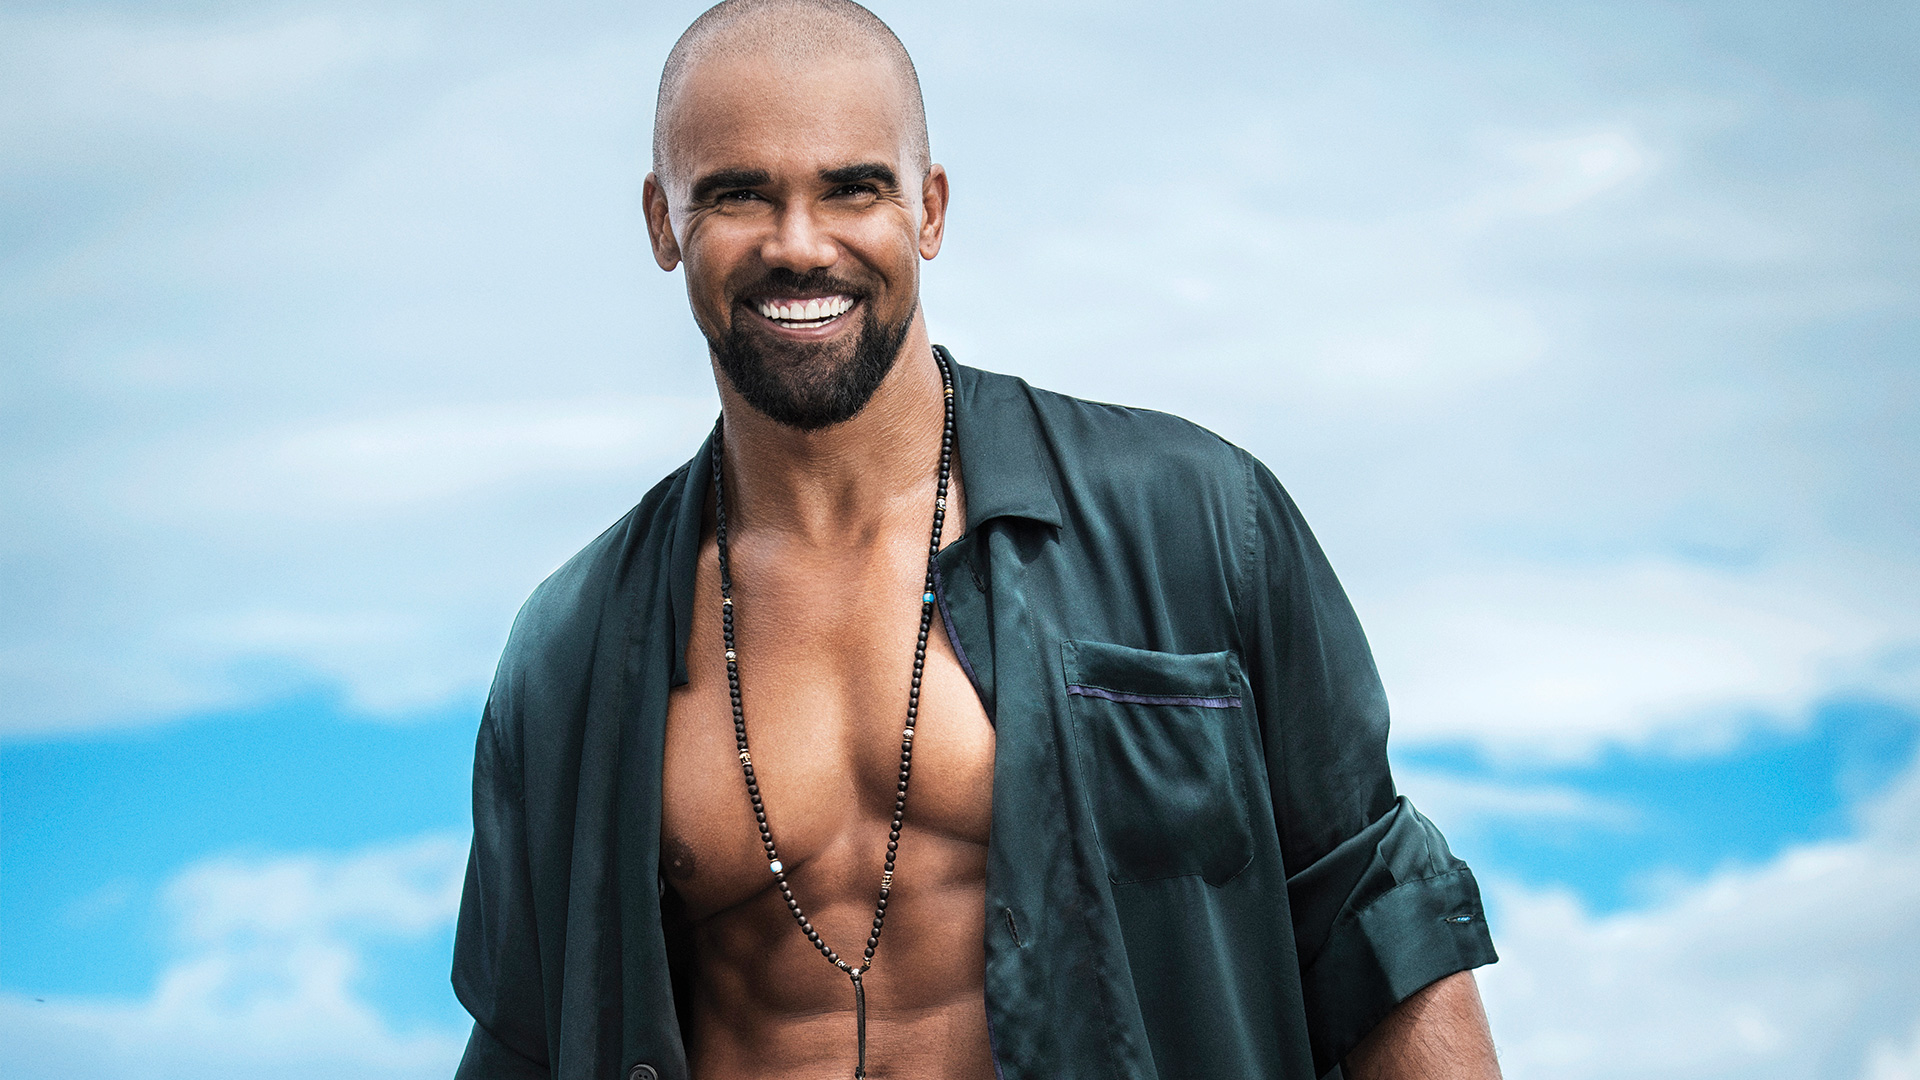 Stop what you're doing and check out these sizzling Shemar Moore photos!